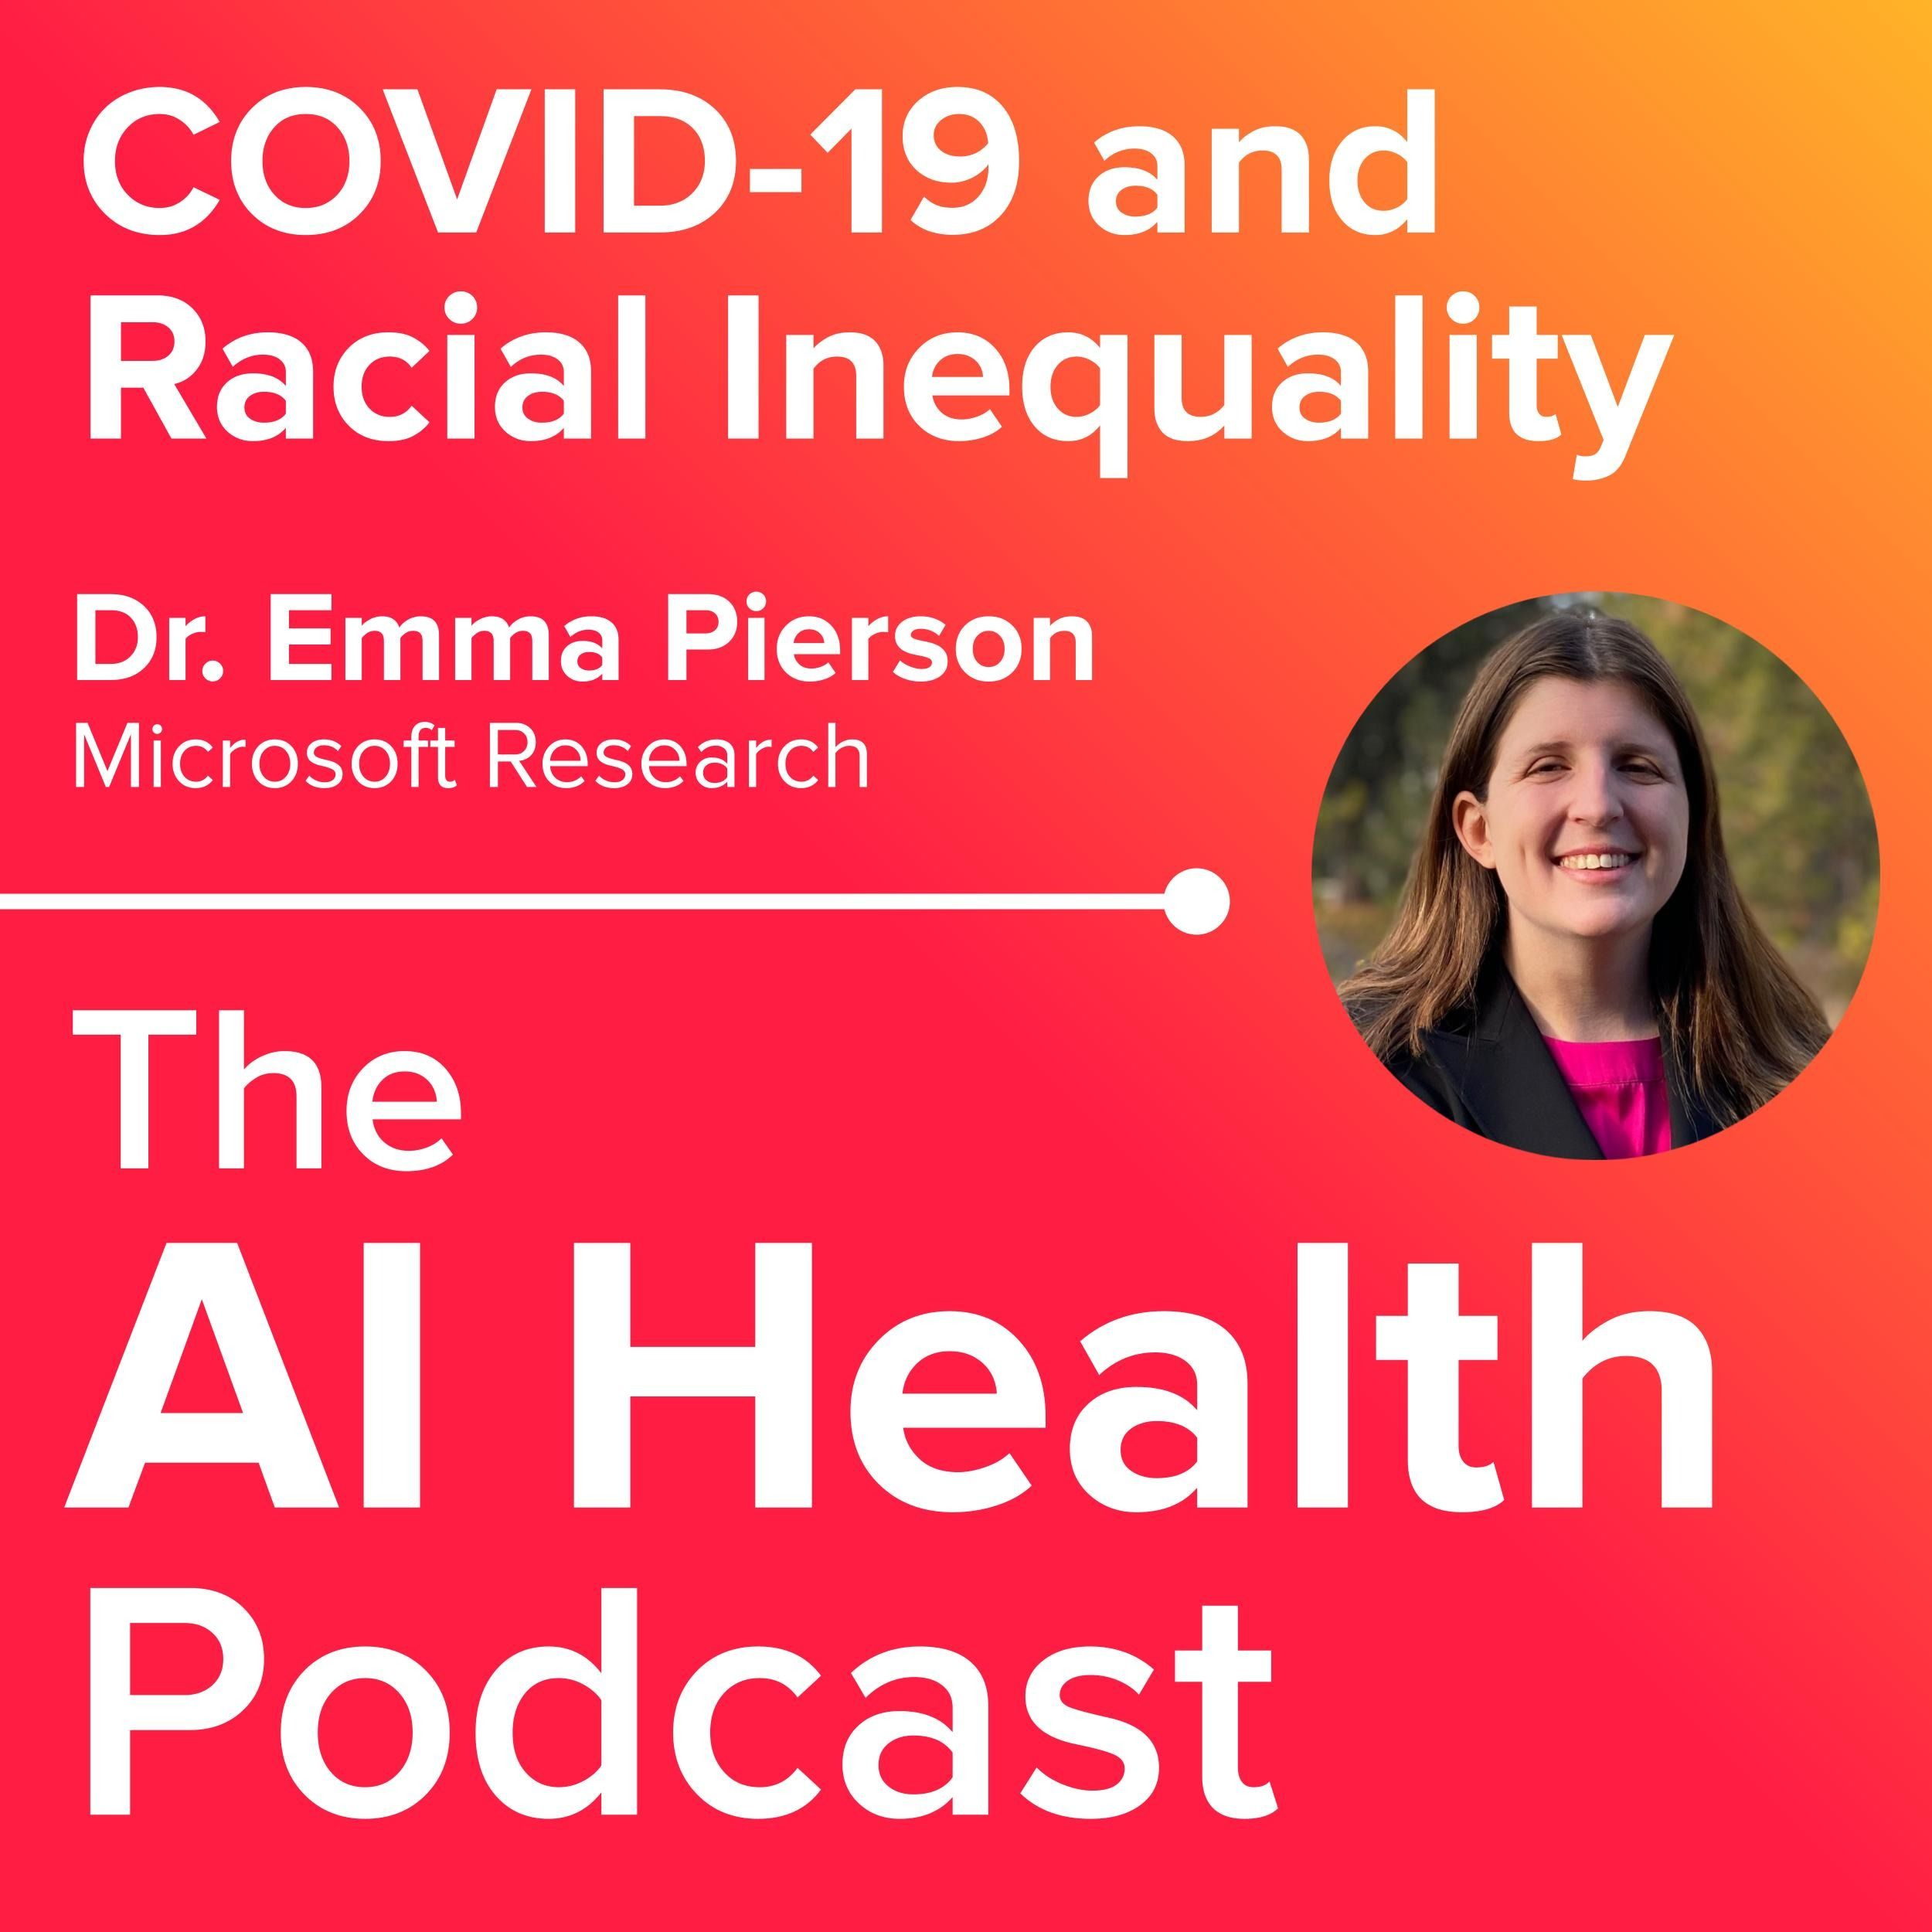 COVID-19 and Racial Inequality with Microsoft Research's Dr. Emma Pierson